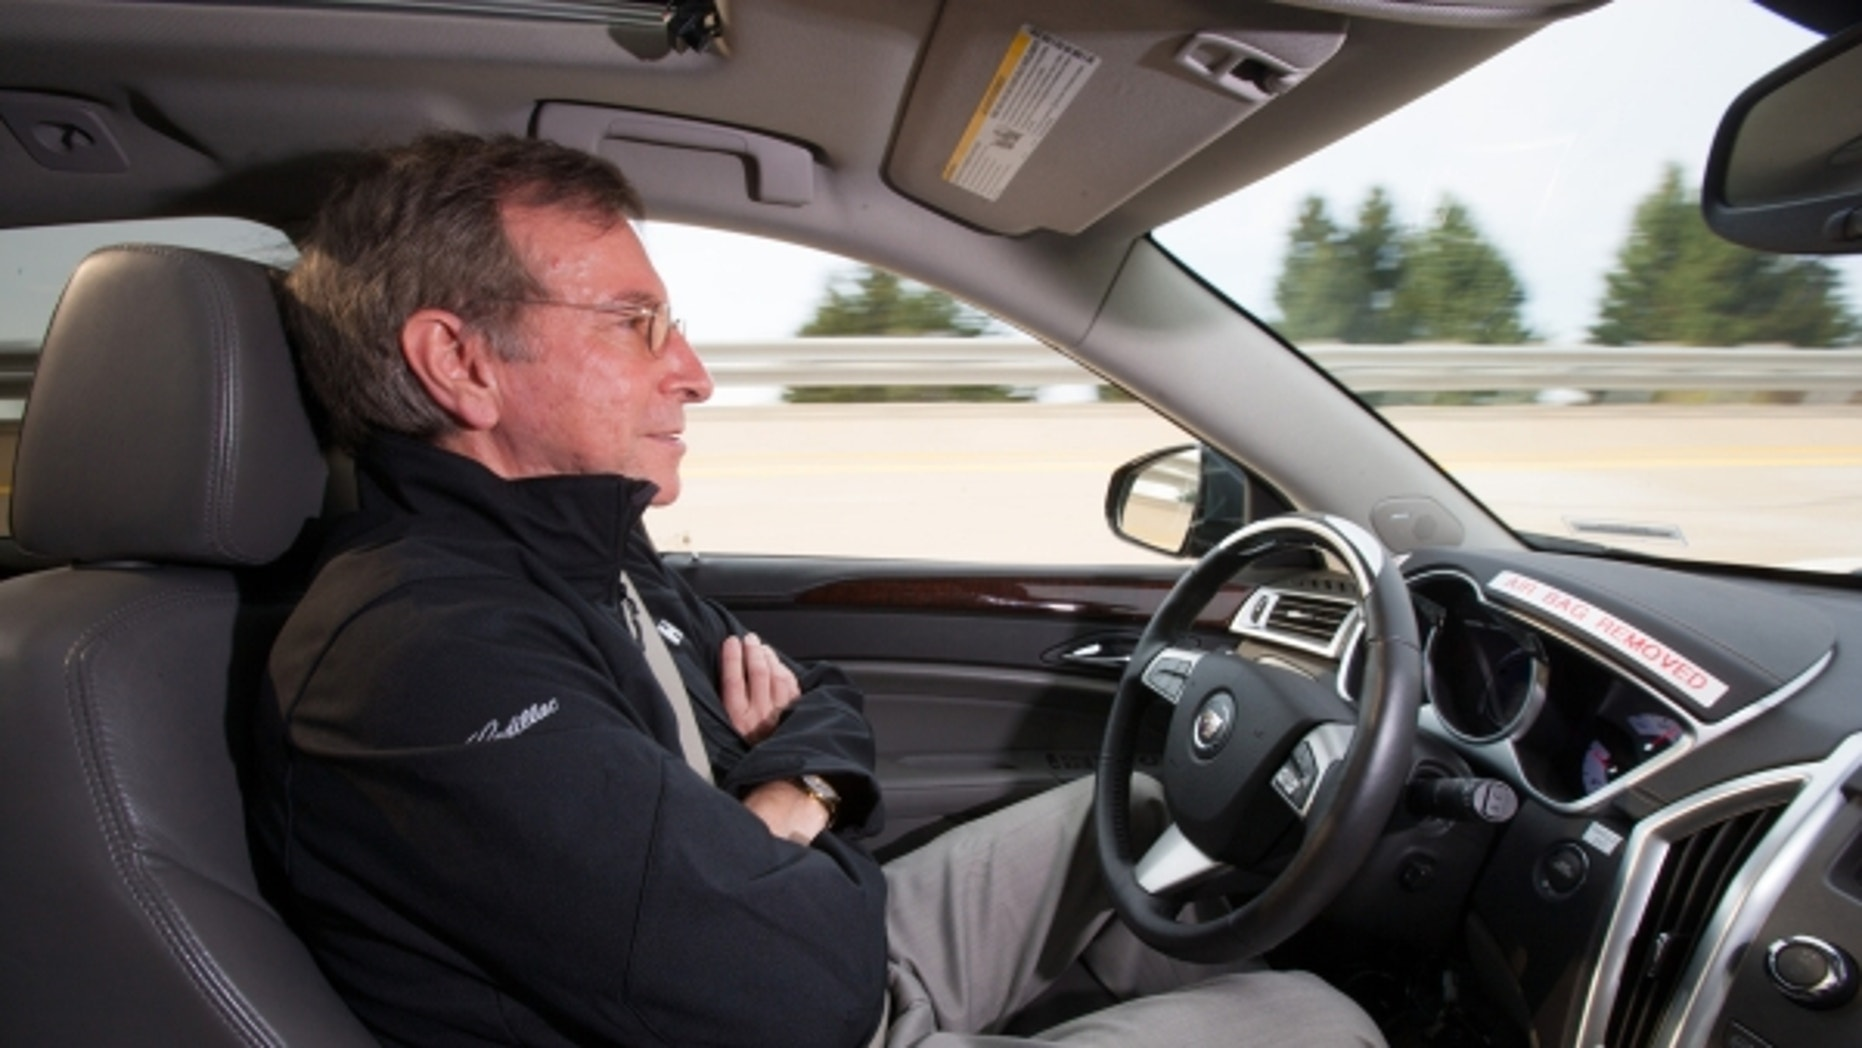 "General Motors Staff Researcher Dr. Jeremy Salinger road tests a Cadillac semi-autonomous driving technology it calls ""Super Cruise"" that is capable of fully automatic steering, braking and lane-centering in highway driving under certain optimal conditions Friday, March 23, 2012 in Milford, Michigan. Super Cruise is designed to ease the driver's workload on the freeway, in both bumper-to-bumper traffic and on long road trips by relying on a fusion of radar, ultrasonic sensors, cameras and GPS map data. The system could be ready for production vehicles by mid-decade. (Photo by John F. Martin for Cadillac)"